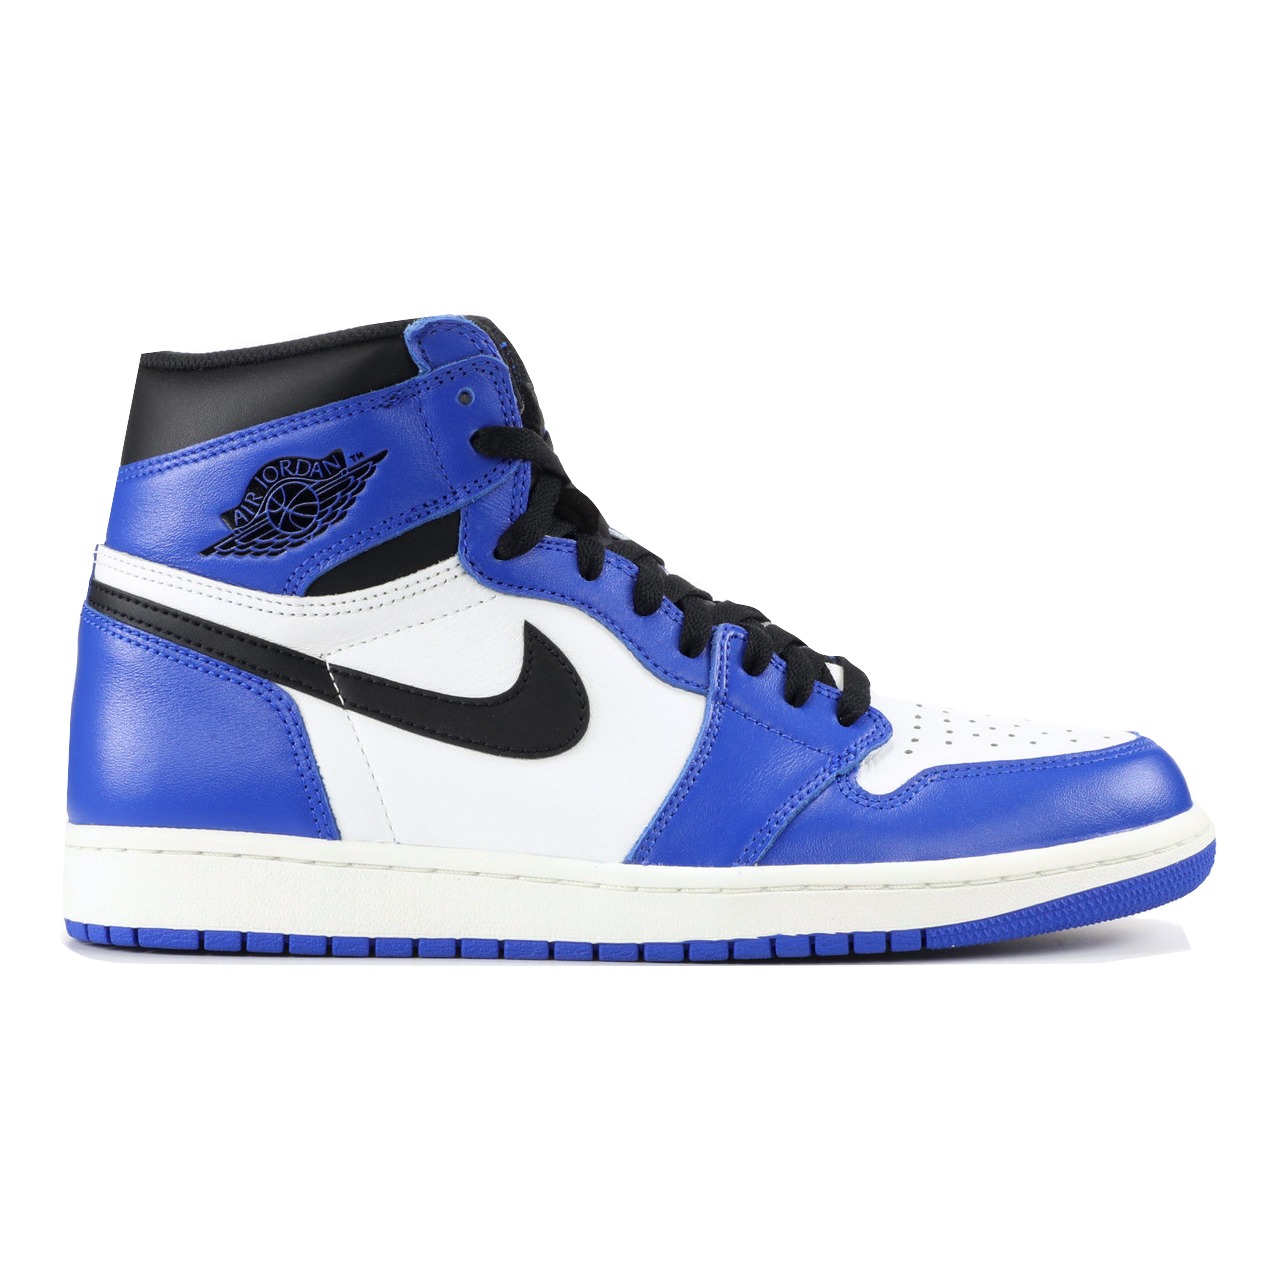 Air Jordan 1 Retro High OG - Game Royal - Used